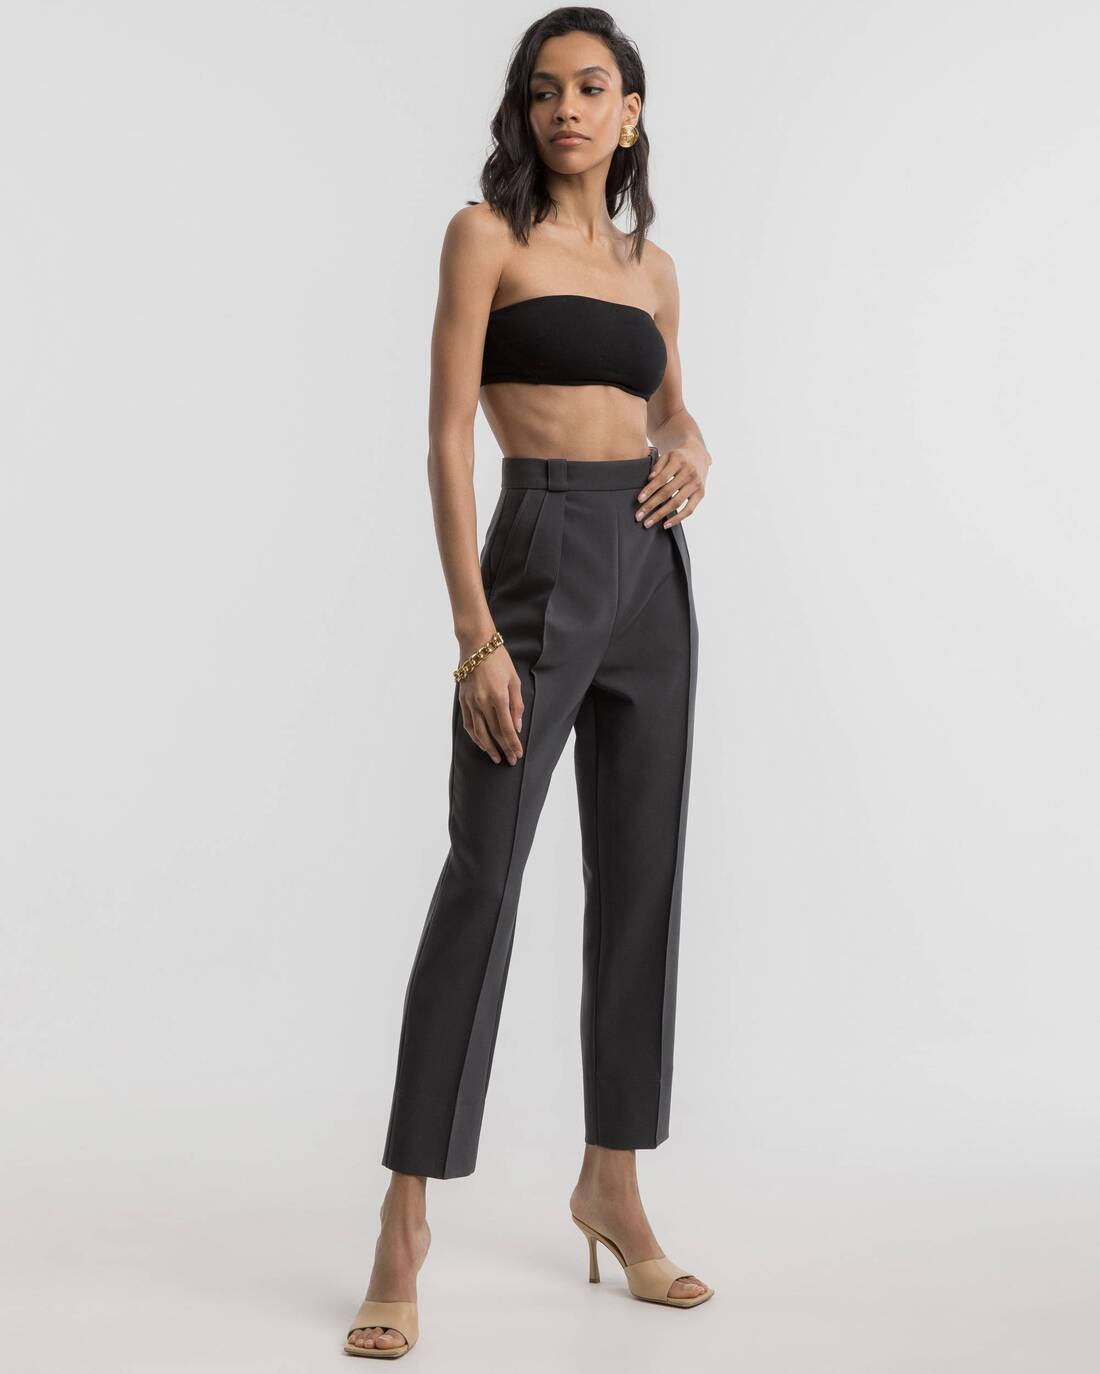 Costume cigarette style pants with rolled-up cuffs